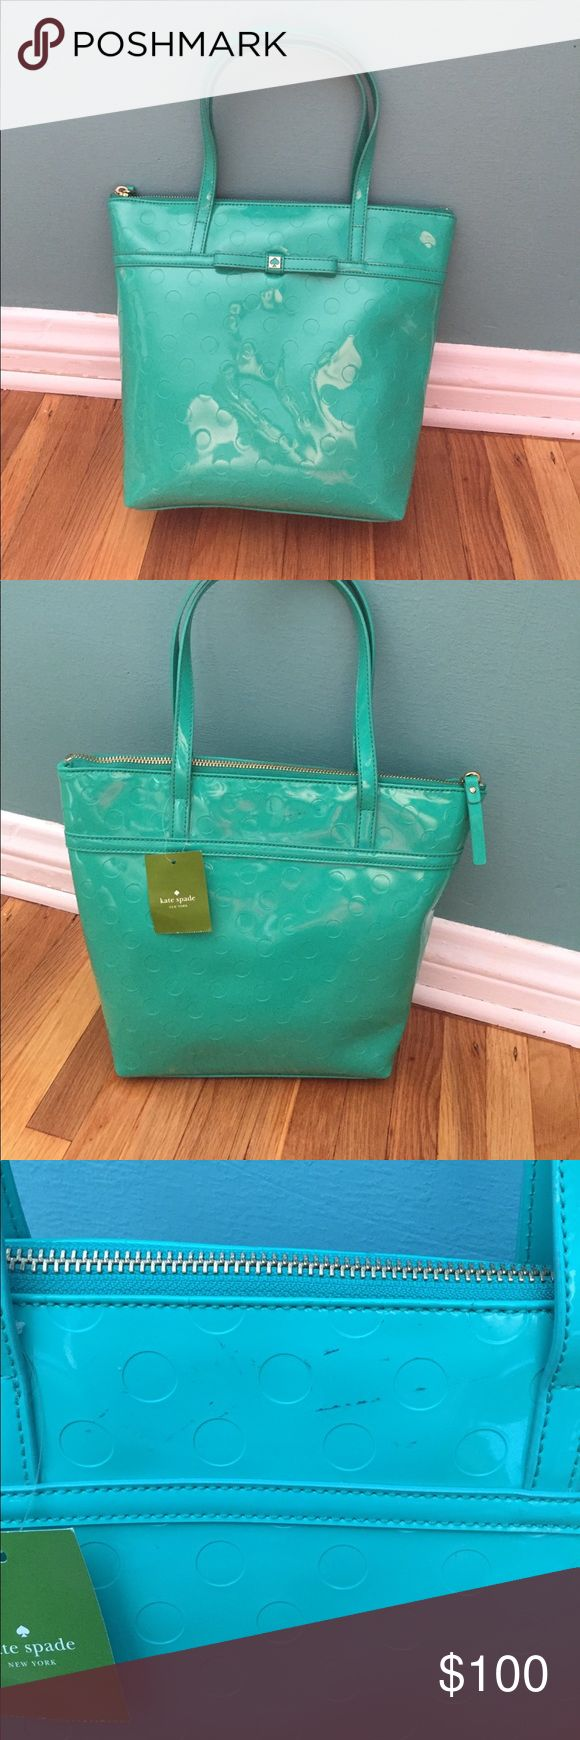 Kate spade teal purse Never Used!!!  Kate Spade Cemellia Street patent leather Handbag, ZipTop Closure, Interier polyestor Lining, 2 Inside Pockets! It has some little marks on the back near the top of the purse but can be hidden and isn't very noticeable! kate spade Bags Totes